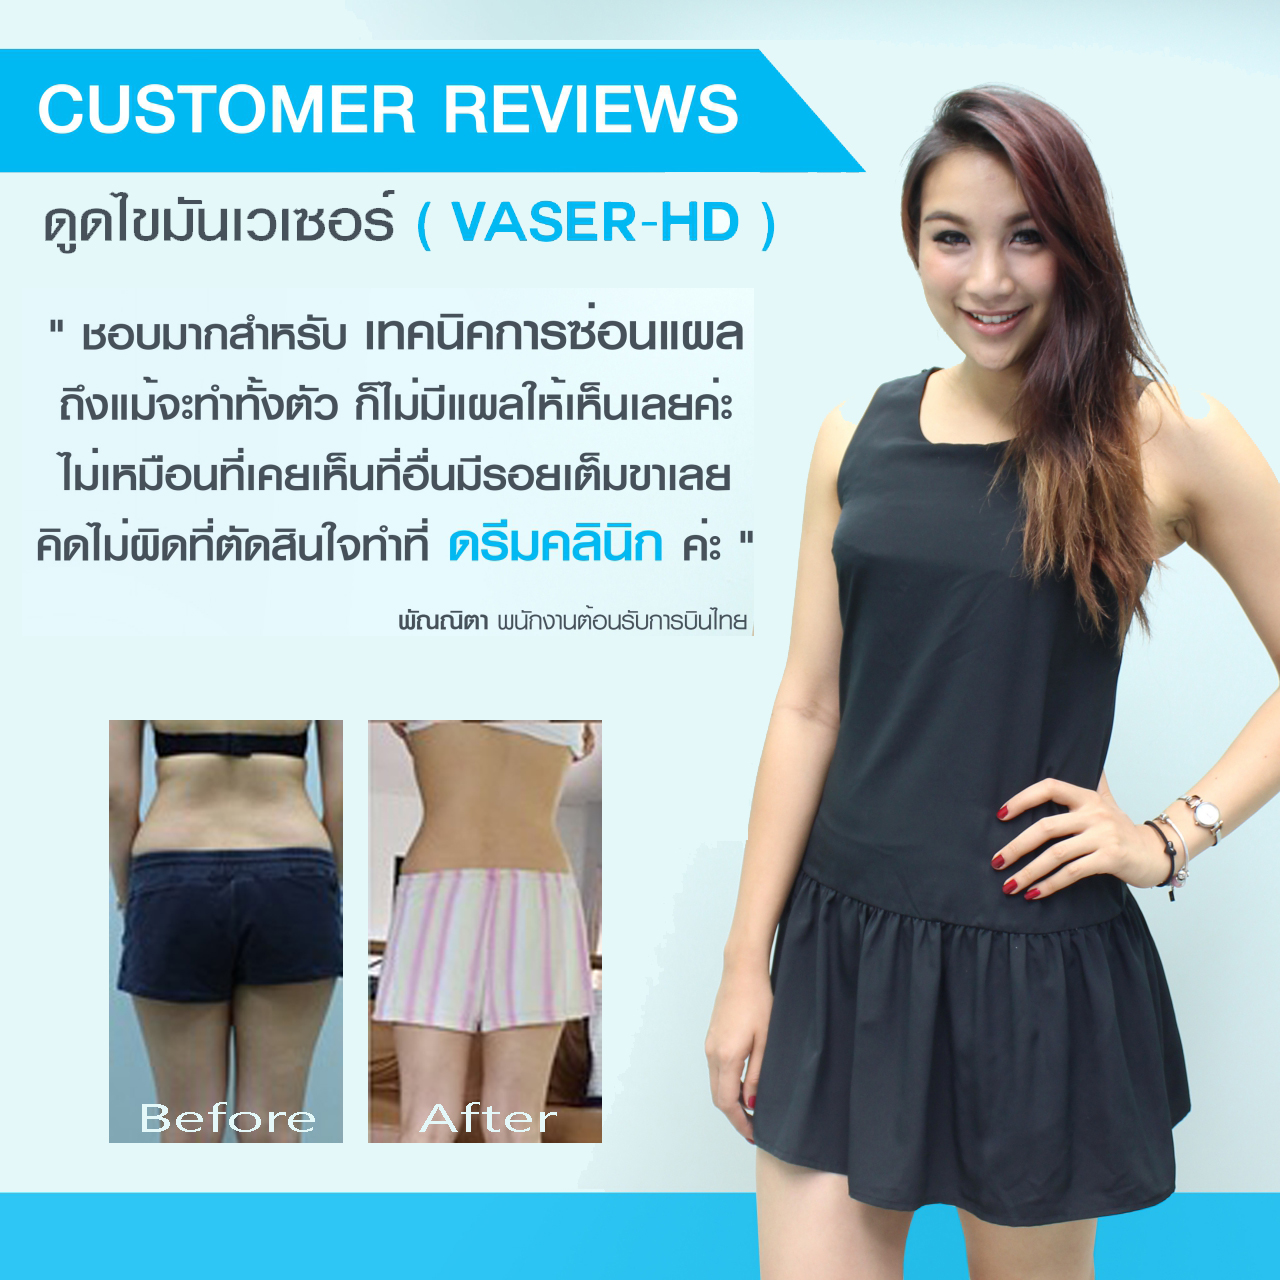 vaser testimonial before after หมอทรงยศ dream